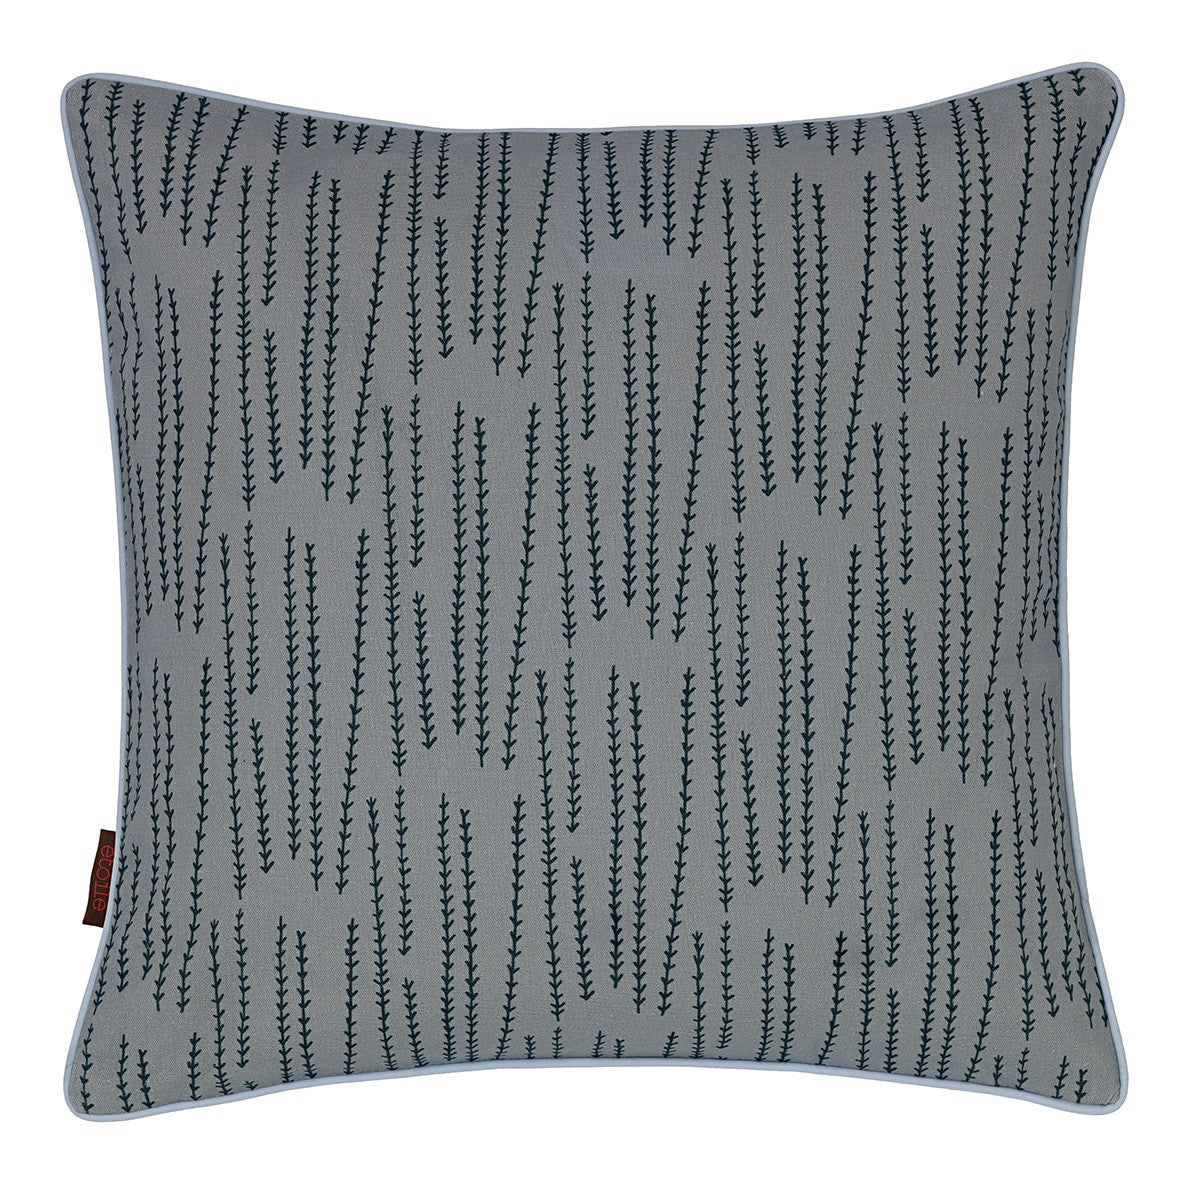 "Graphic Rosemary Pattern Linen Union Printed Throw Pillow in Winter Blue 45x45cm (18x18"") Ships from Canada worldwide including the USA"